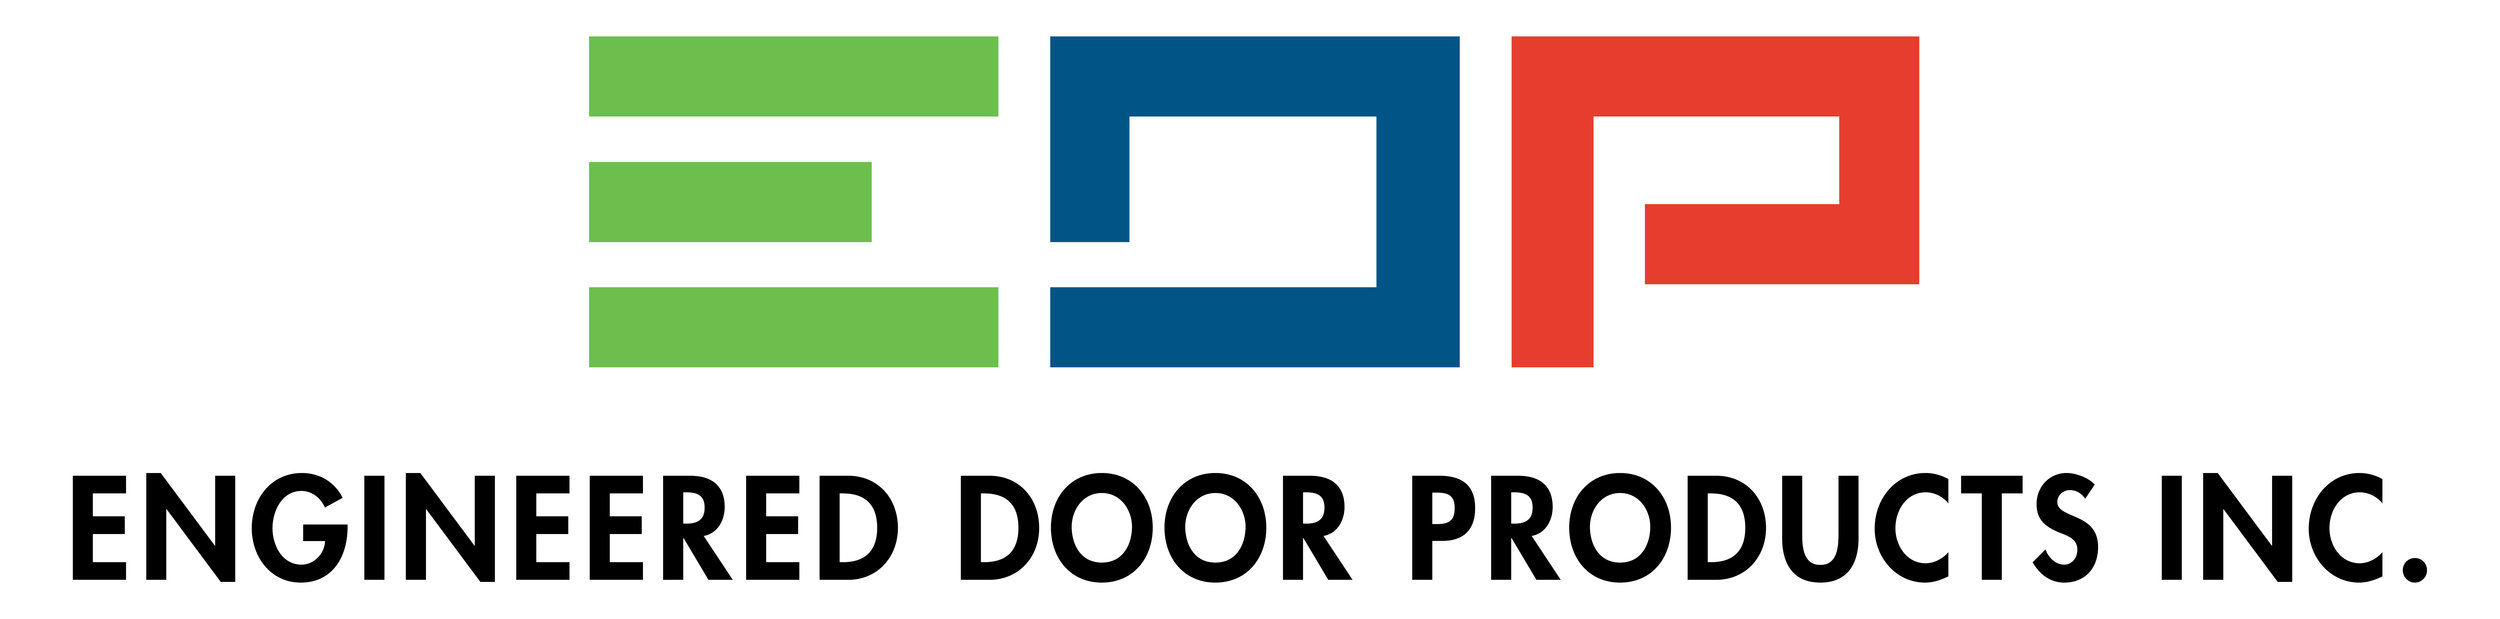 Engineered Door Logo - Web.jpg